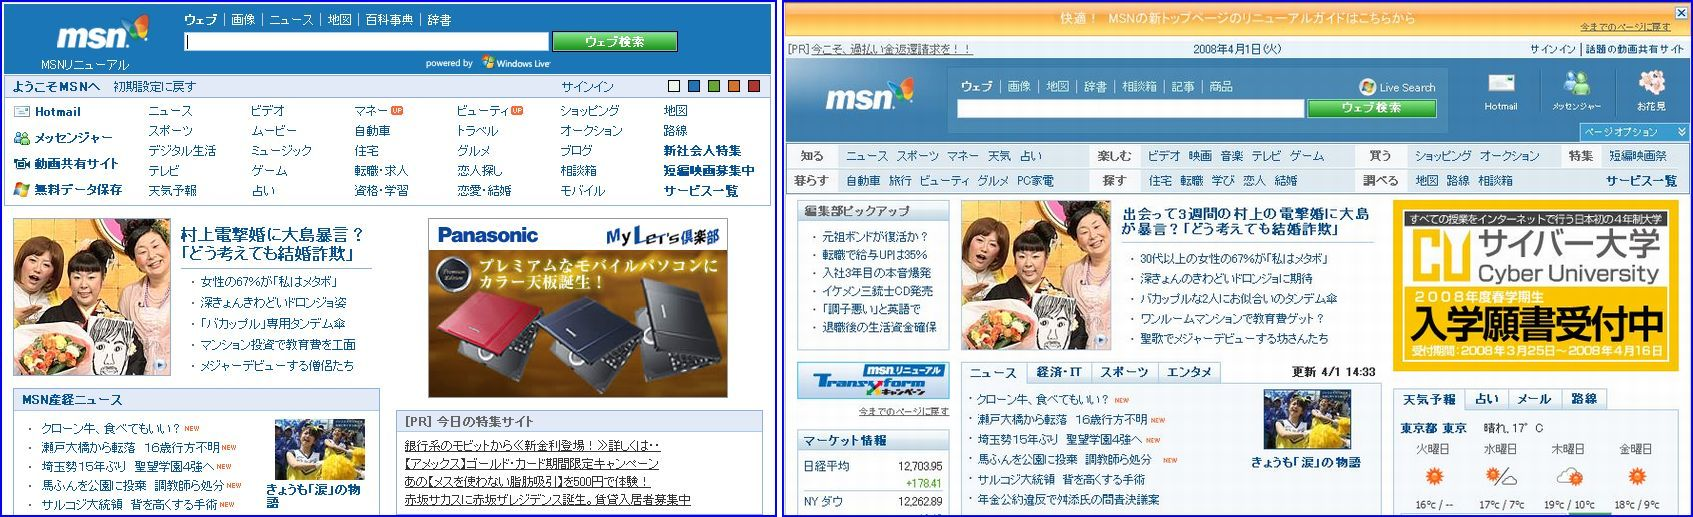 Msnhome3